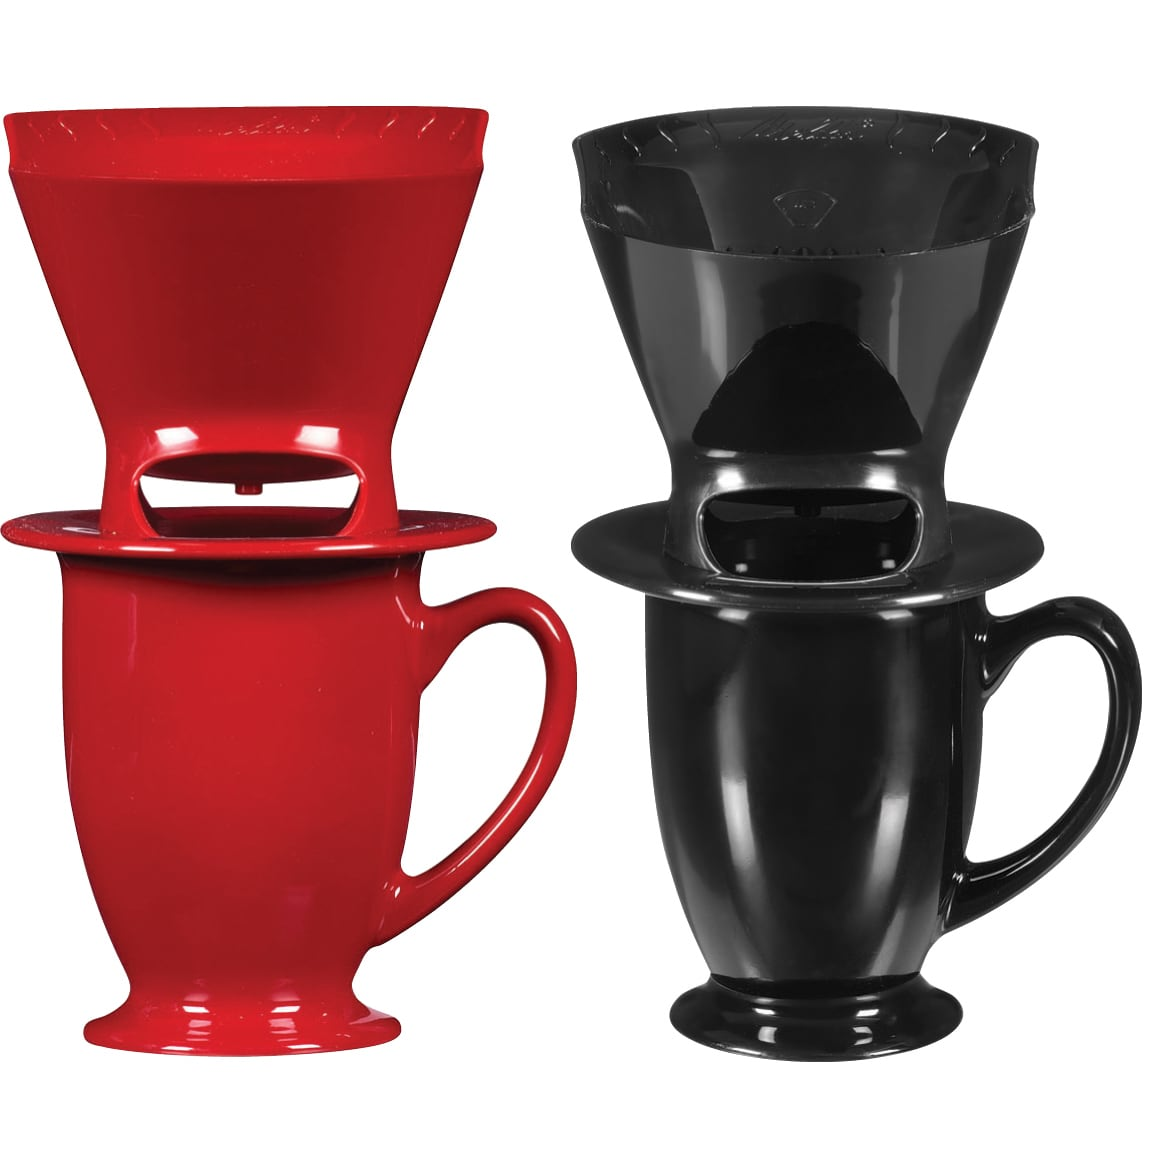 Melitta Pour Over One Cup Ceramic Coffeemaker, Assorted Red or Black